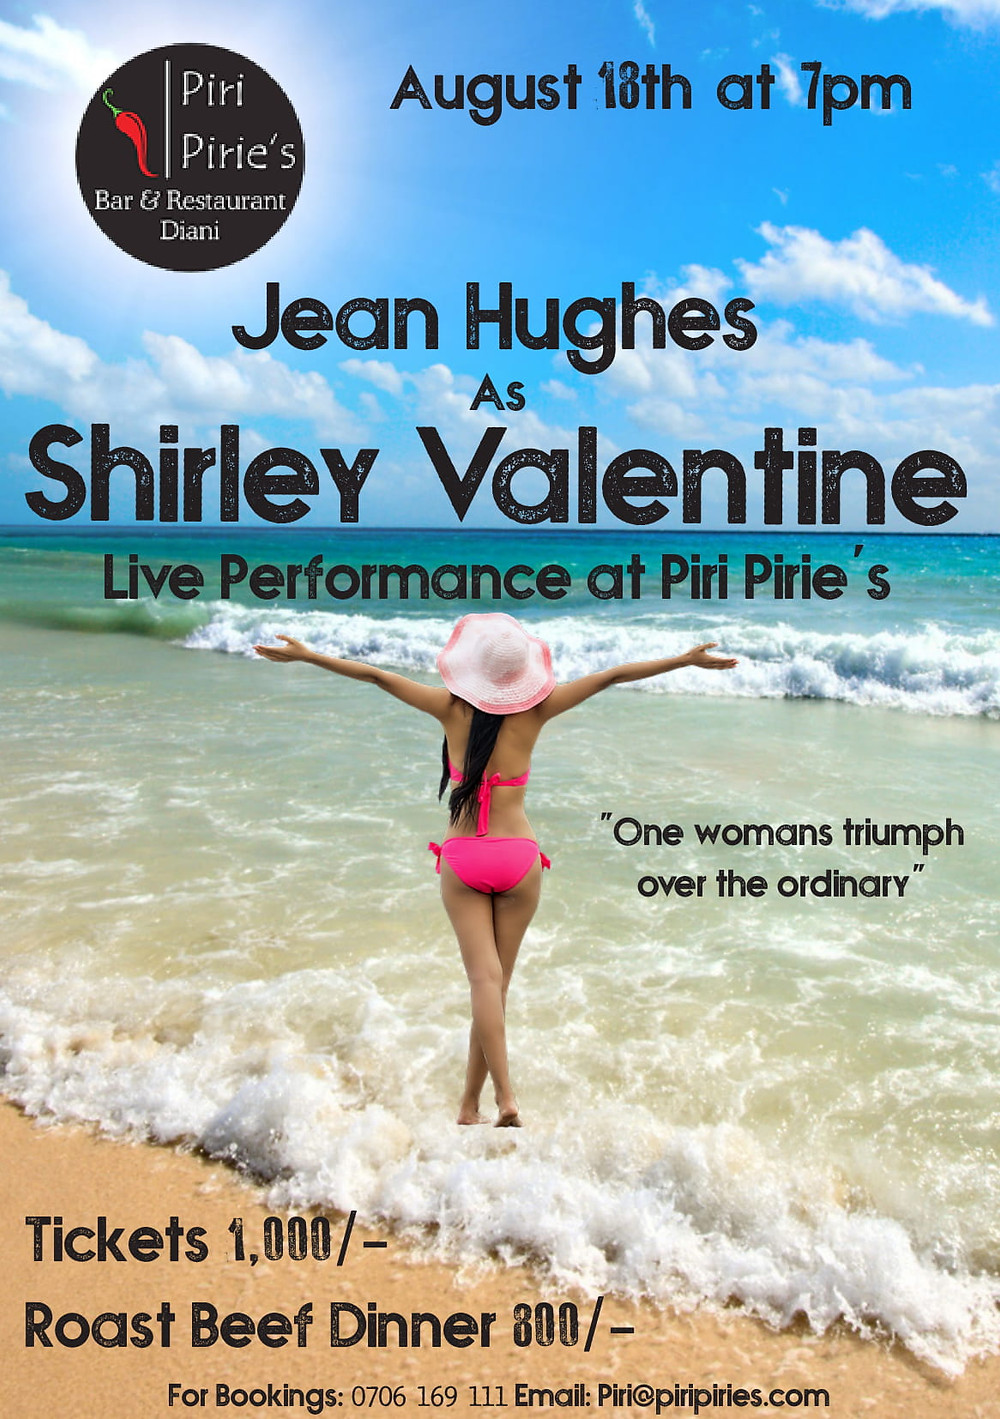 Saturday 18th Aug, Jean Hughes as Shirley Valentine.